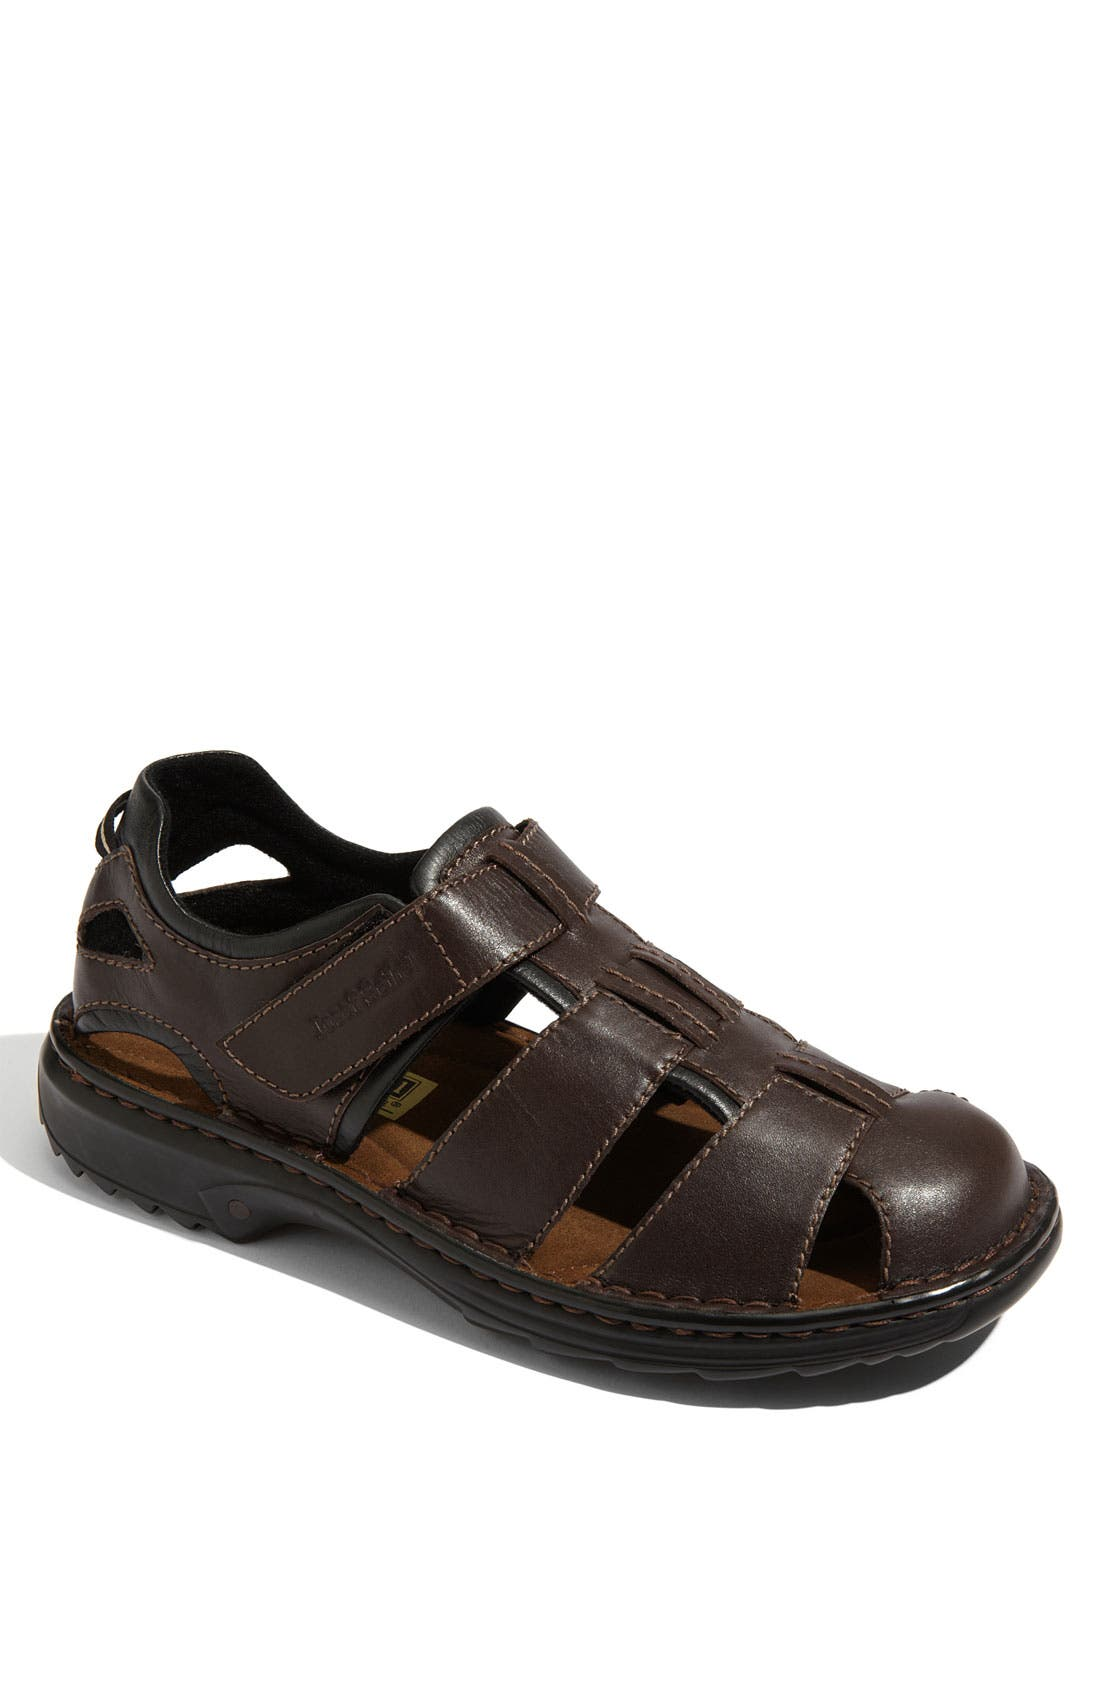 Main Image - Josef Seibel 'Jeremy' Sandal (Men)